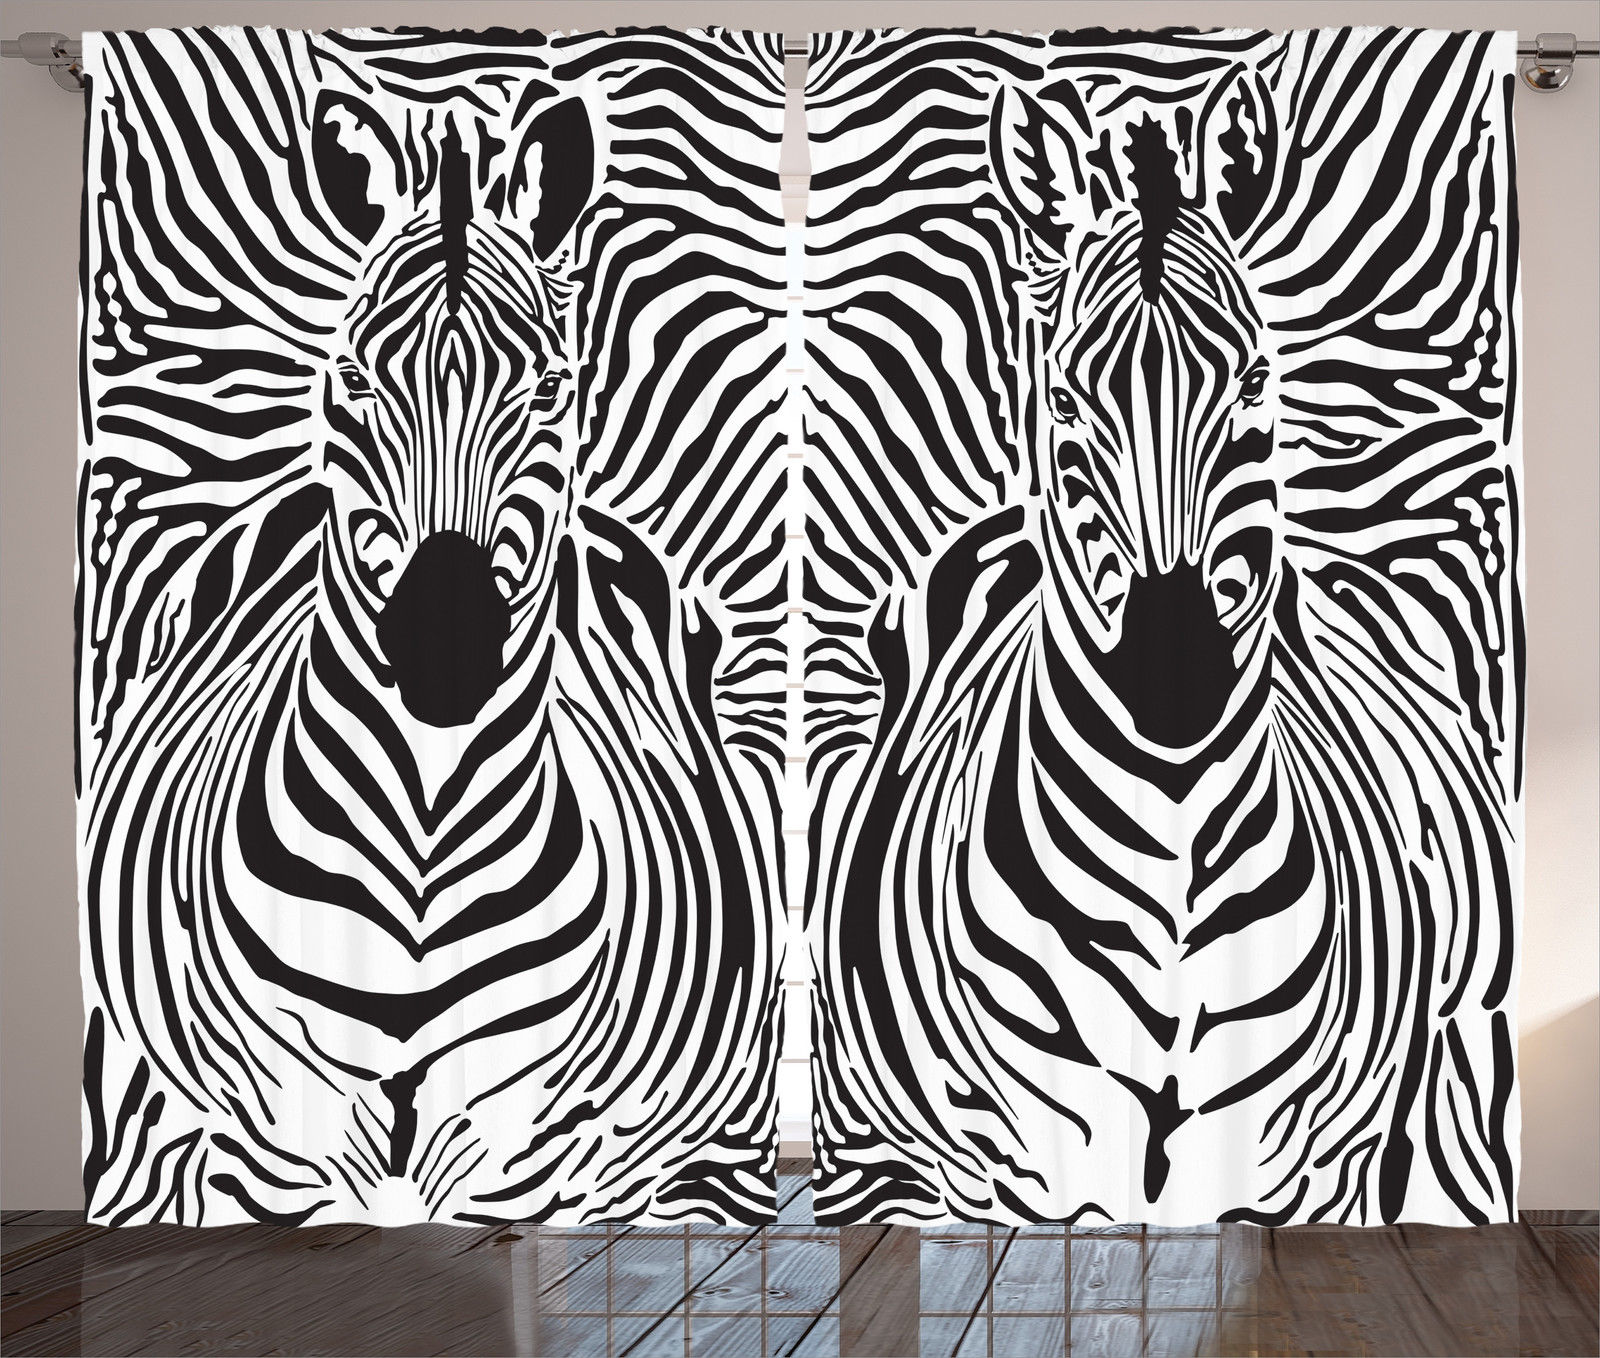 Zebra Print Decor Curtains 2 Panels Set, Illustration Pattern Zebras Skins  Background Blended Over Zebra